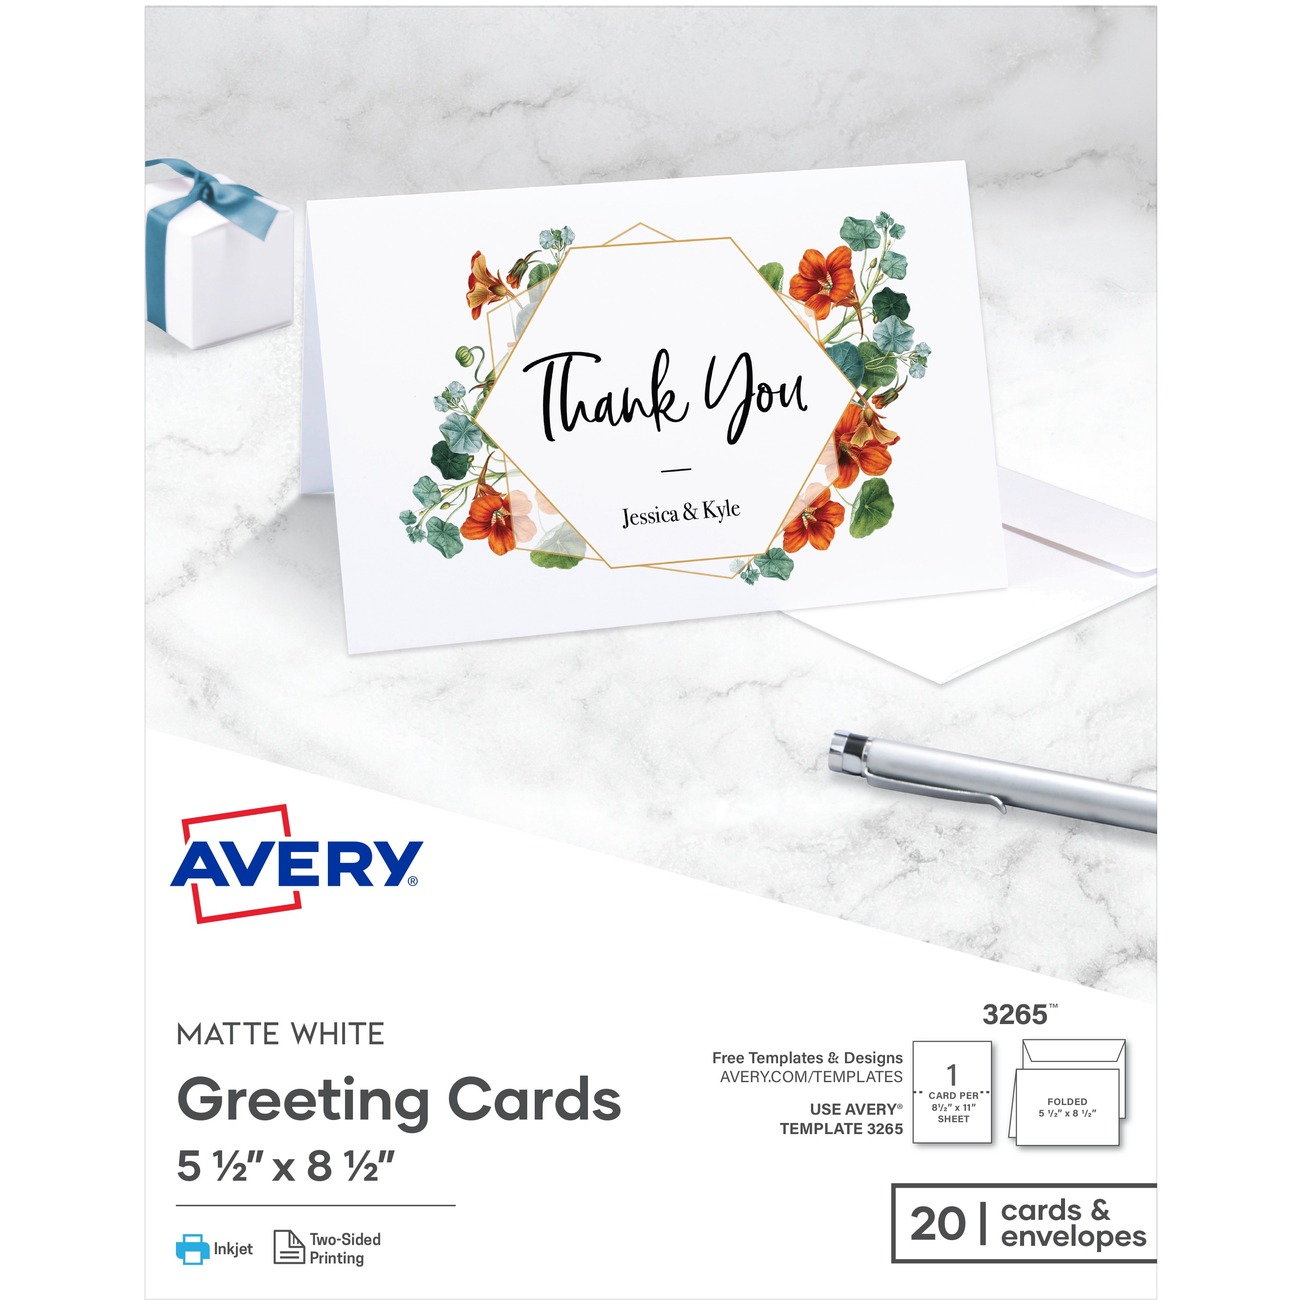 avery greeting card template 3265